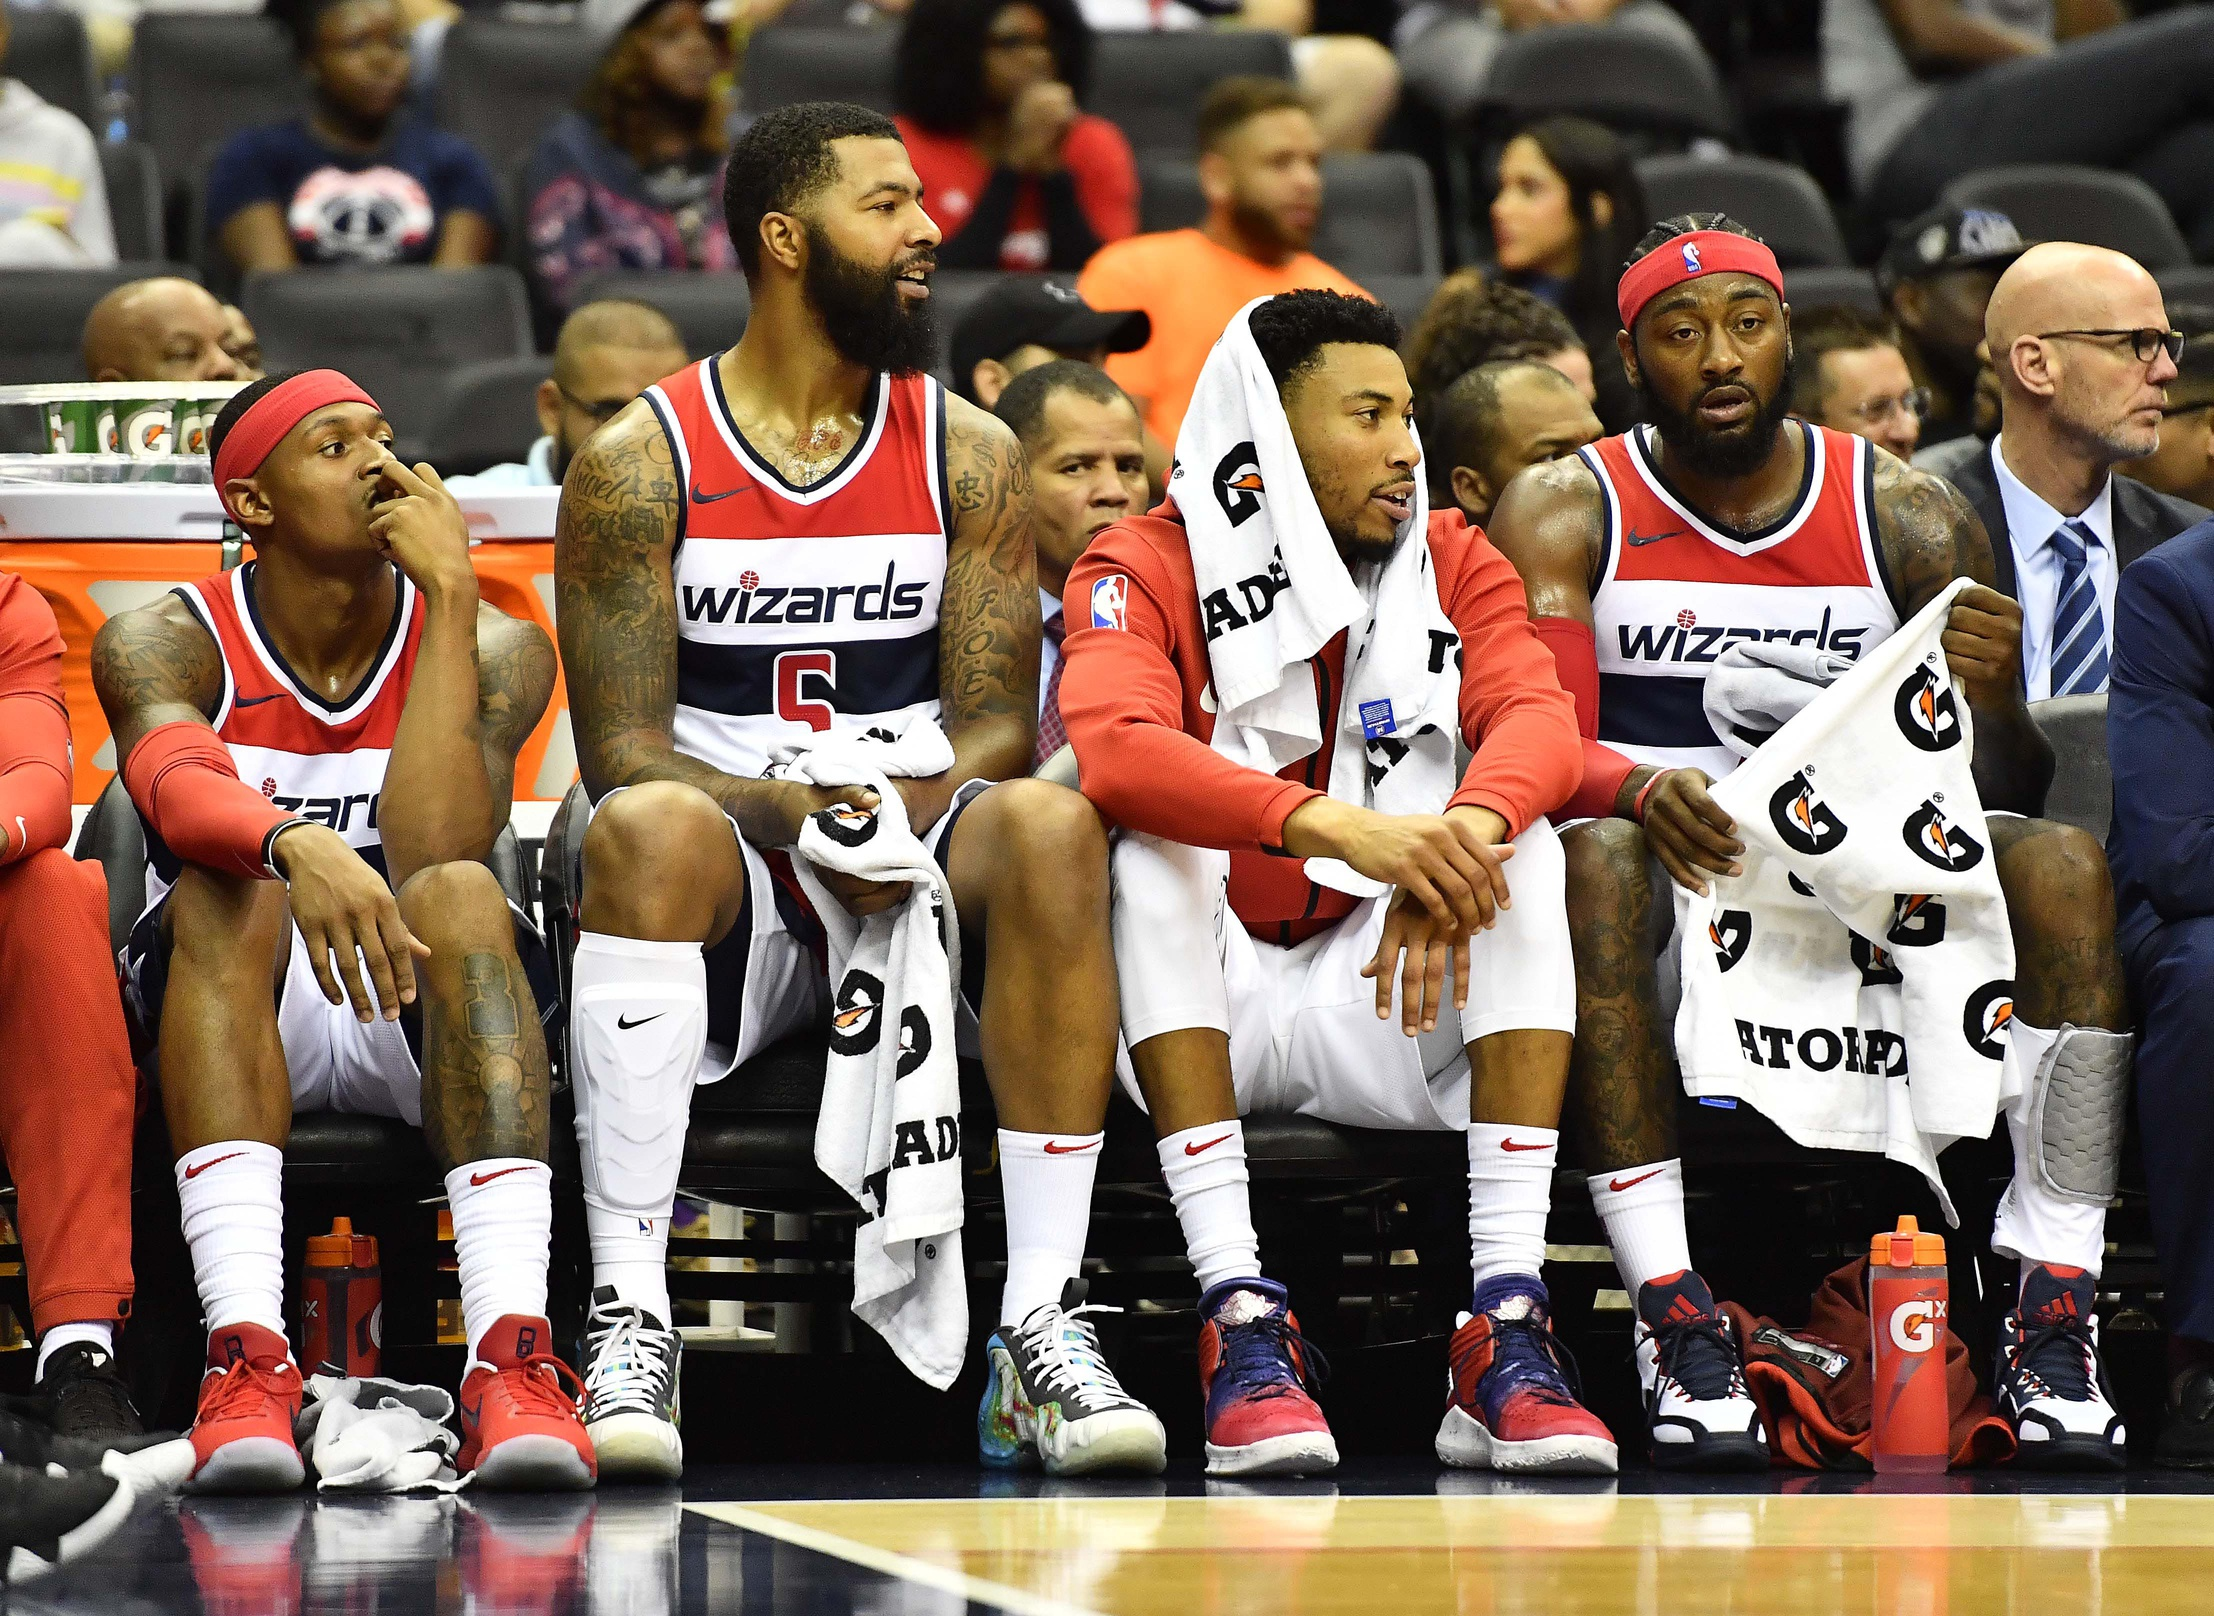 The end is nigh for the Washington Wizards